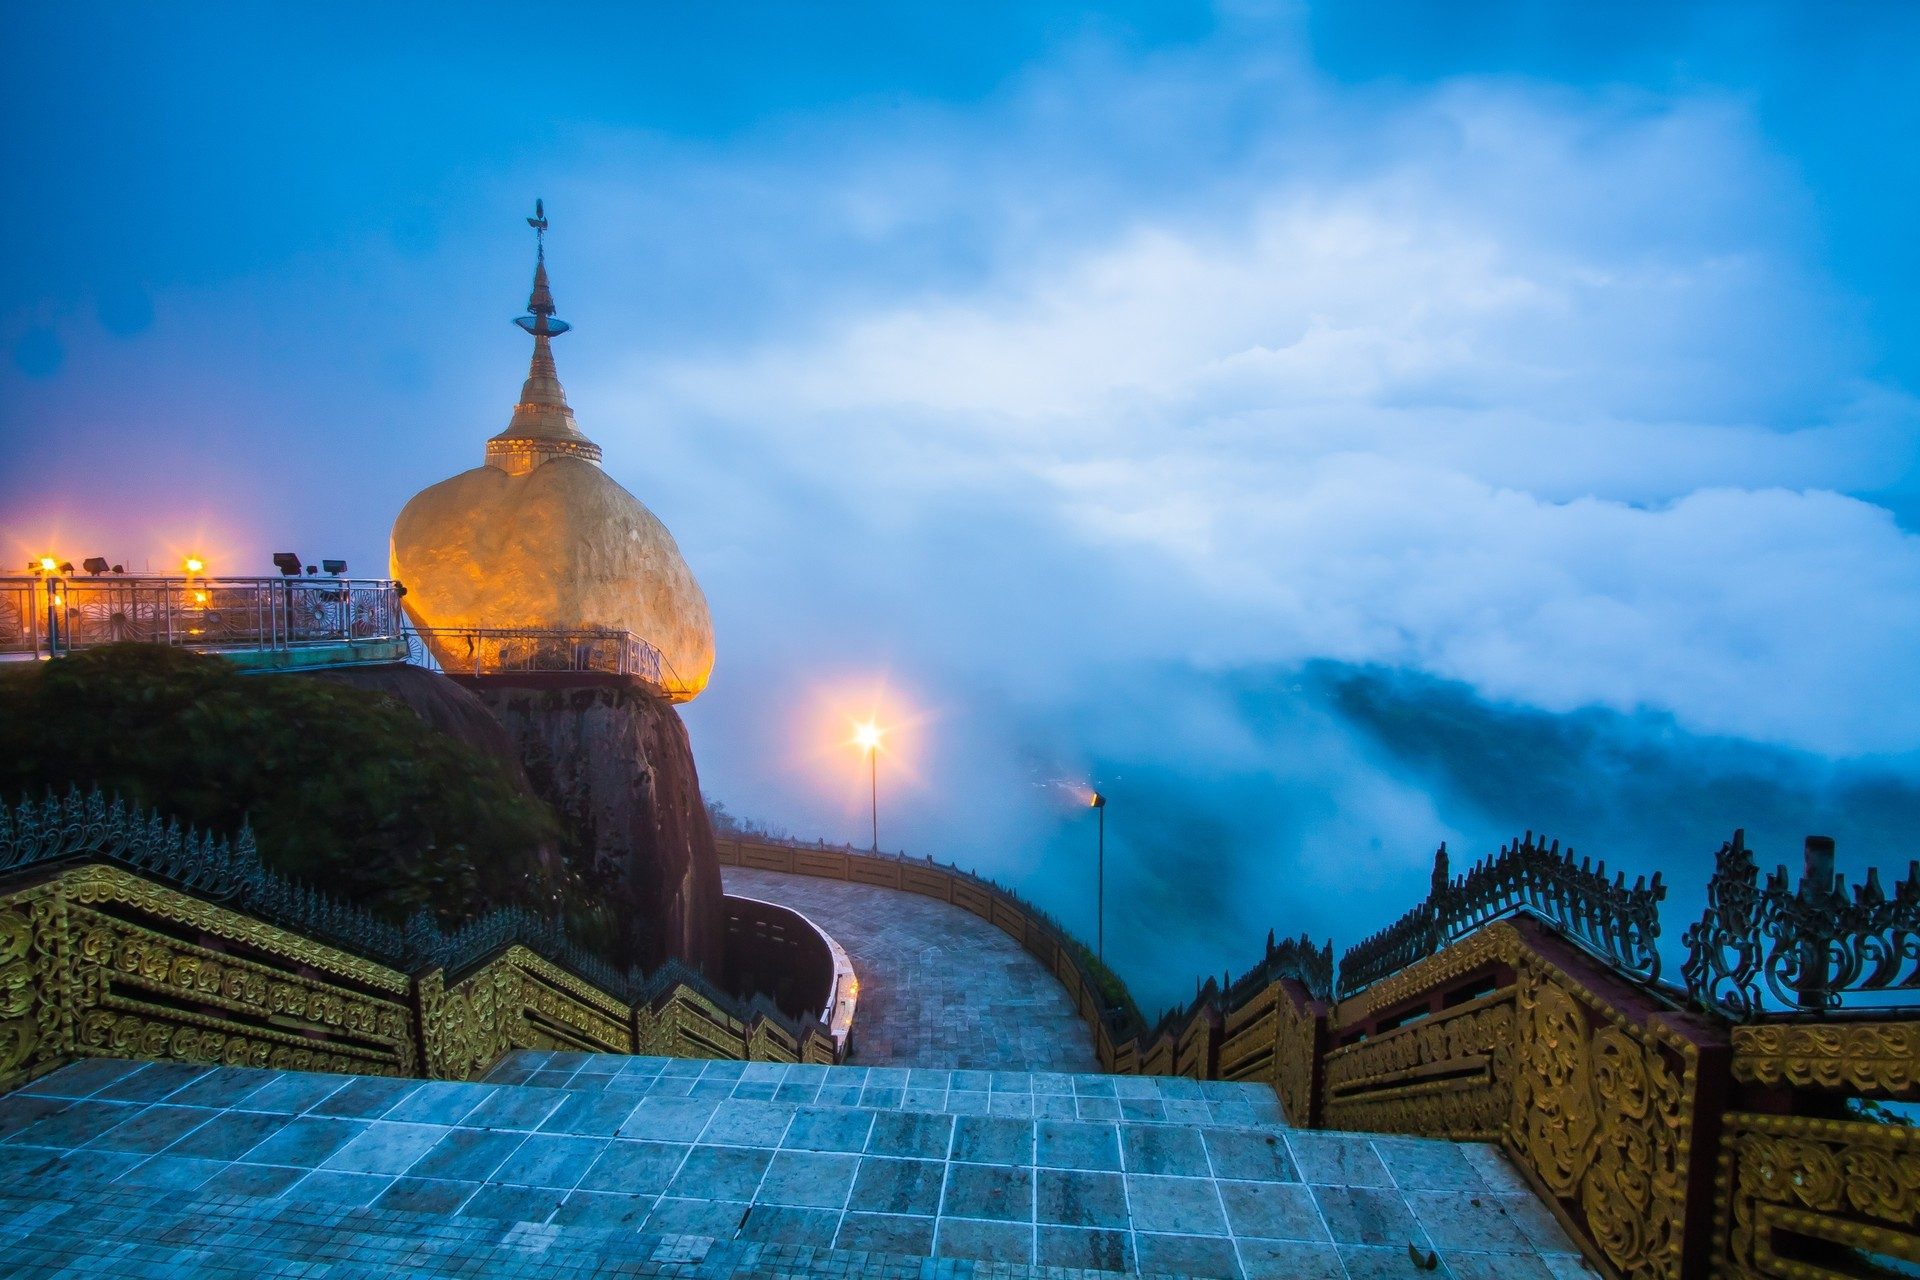 Exotic Animal Wallpaper Nature Landscape Photography Temple Architecture